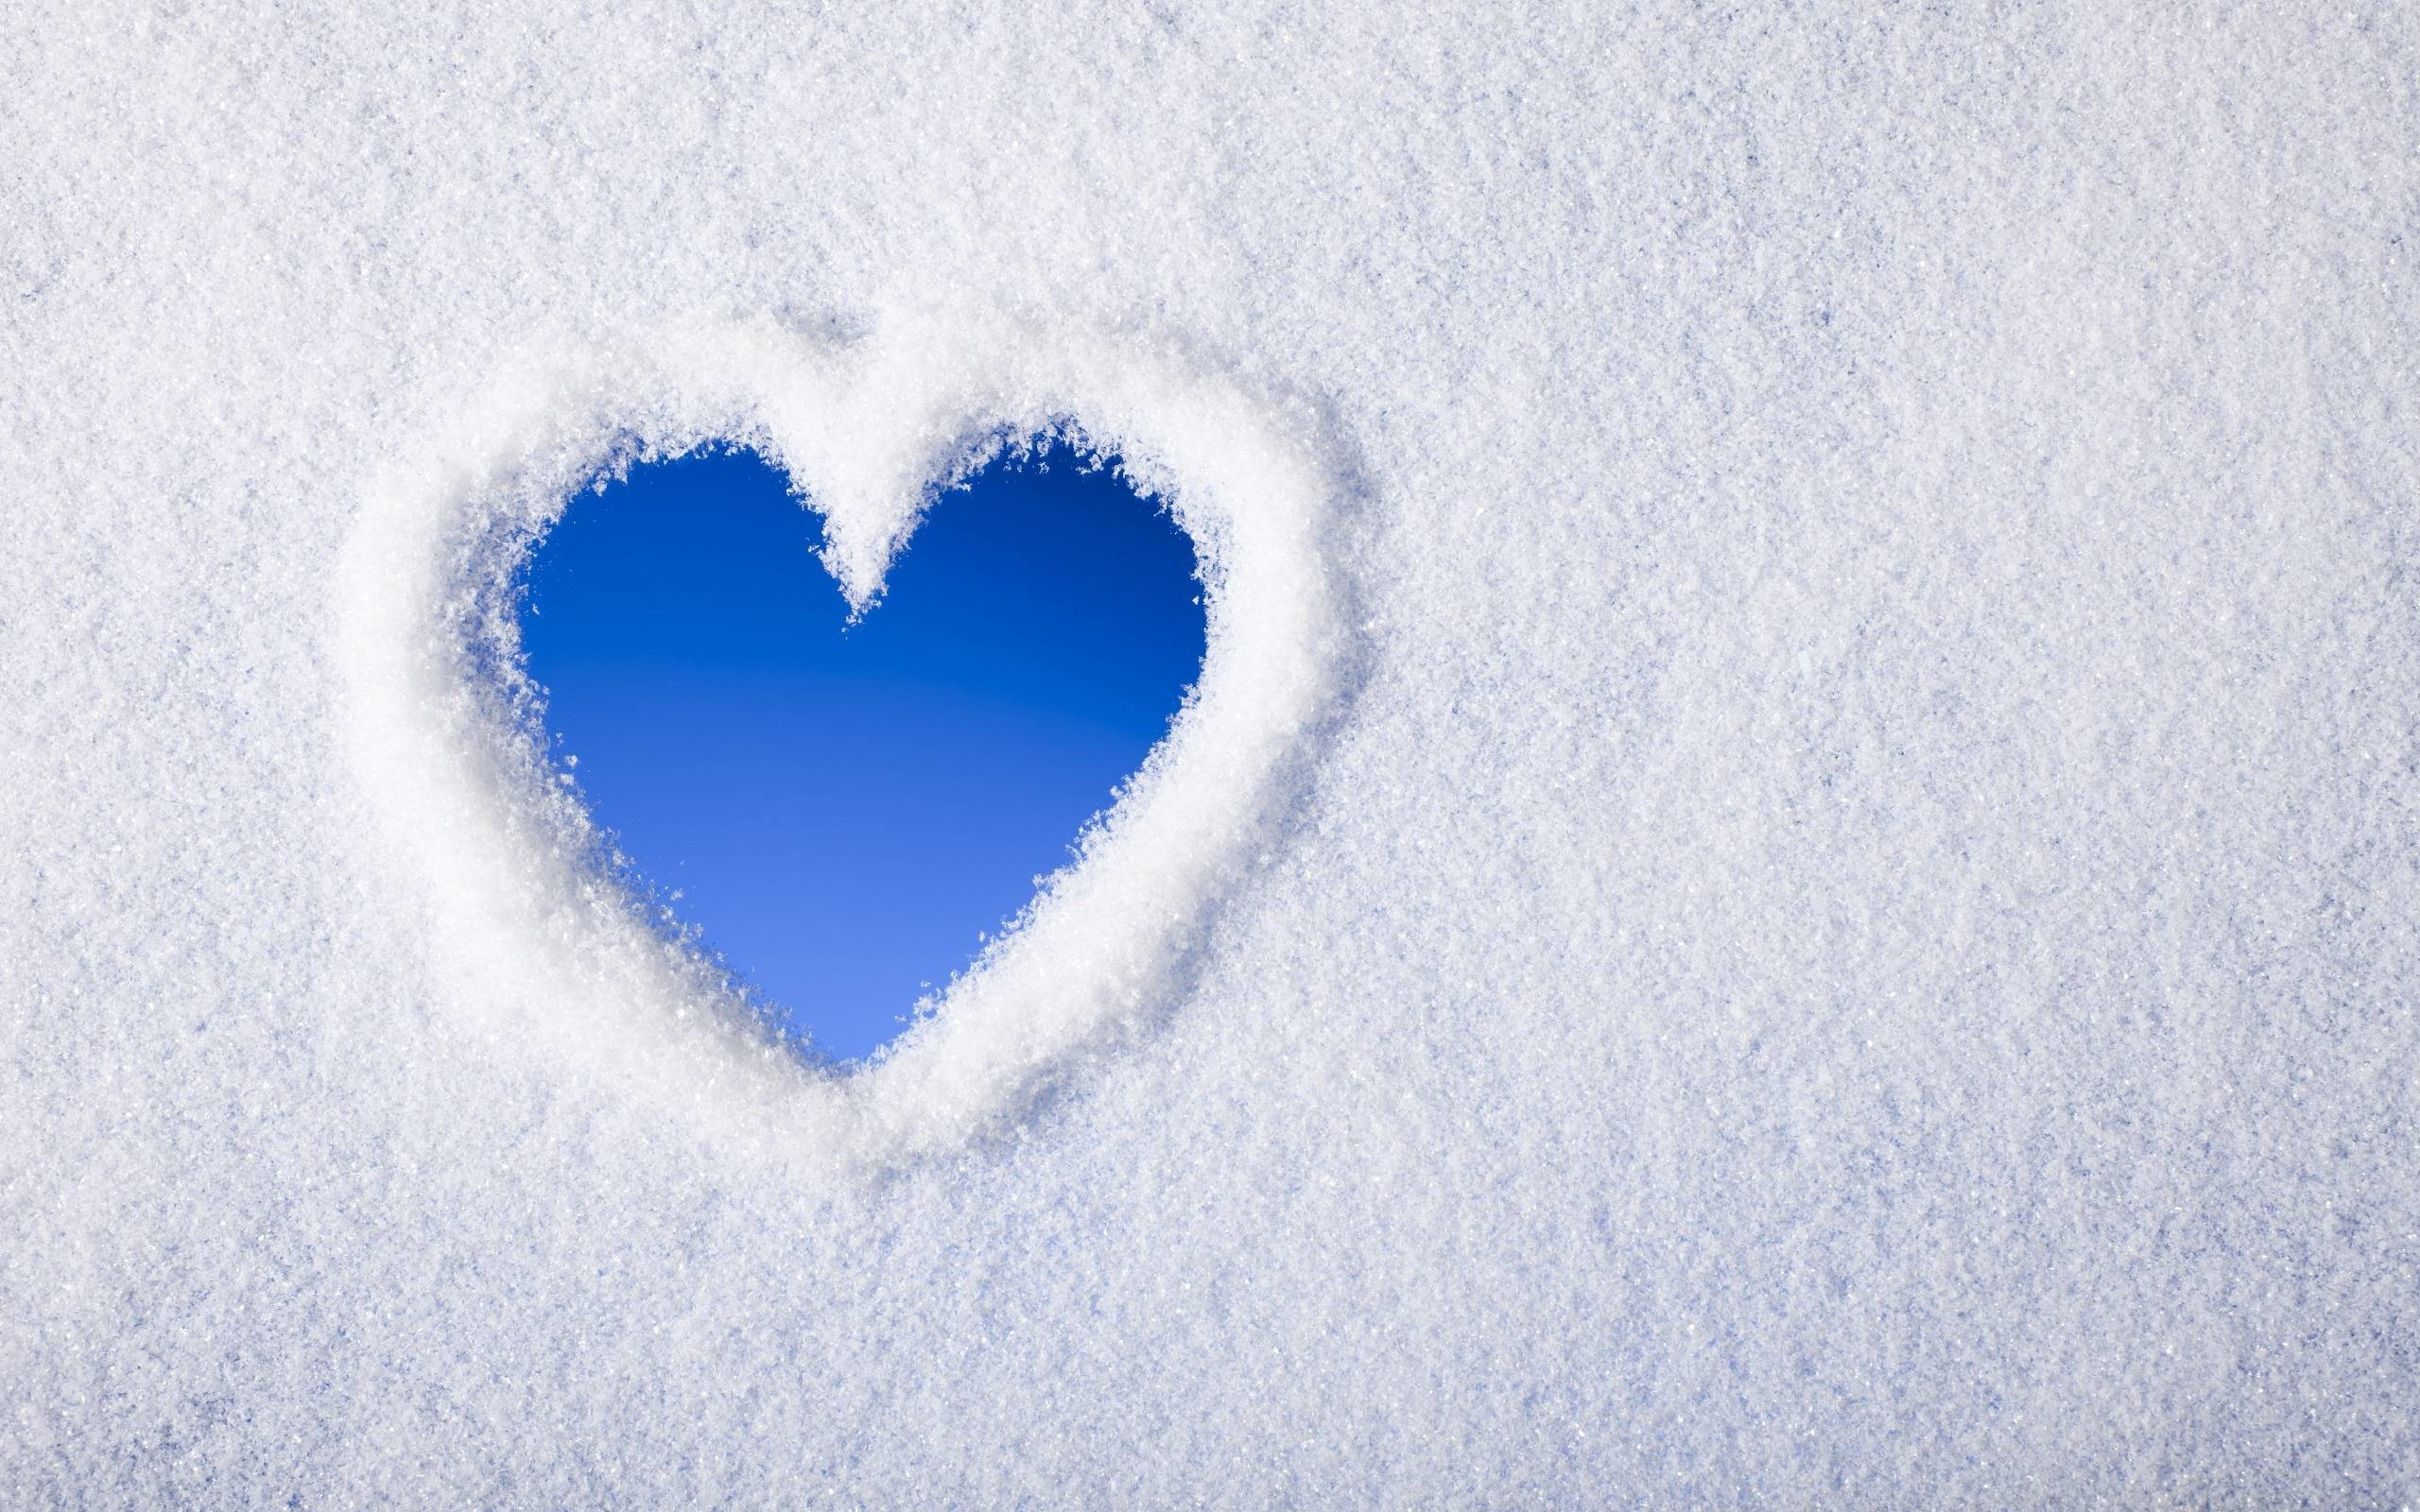 2560x1600 Blue Heart Backgrounds Wallpaper Hd